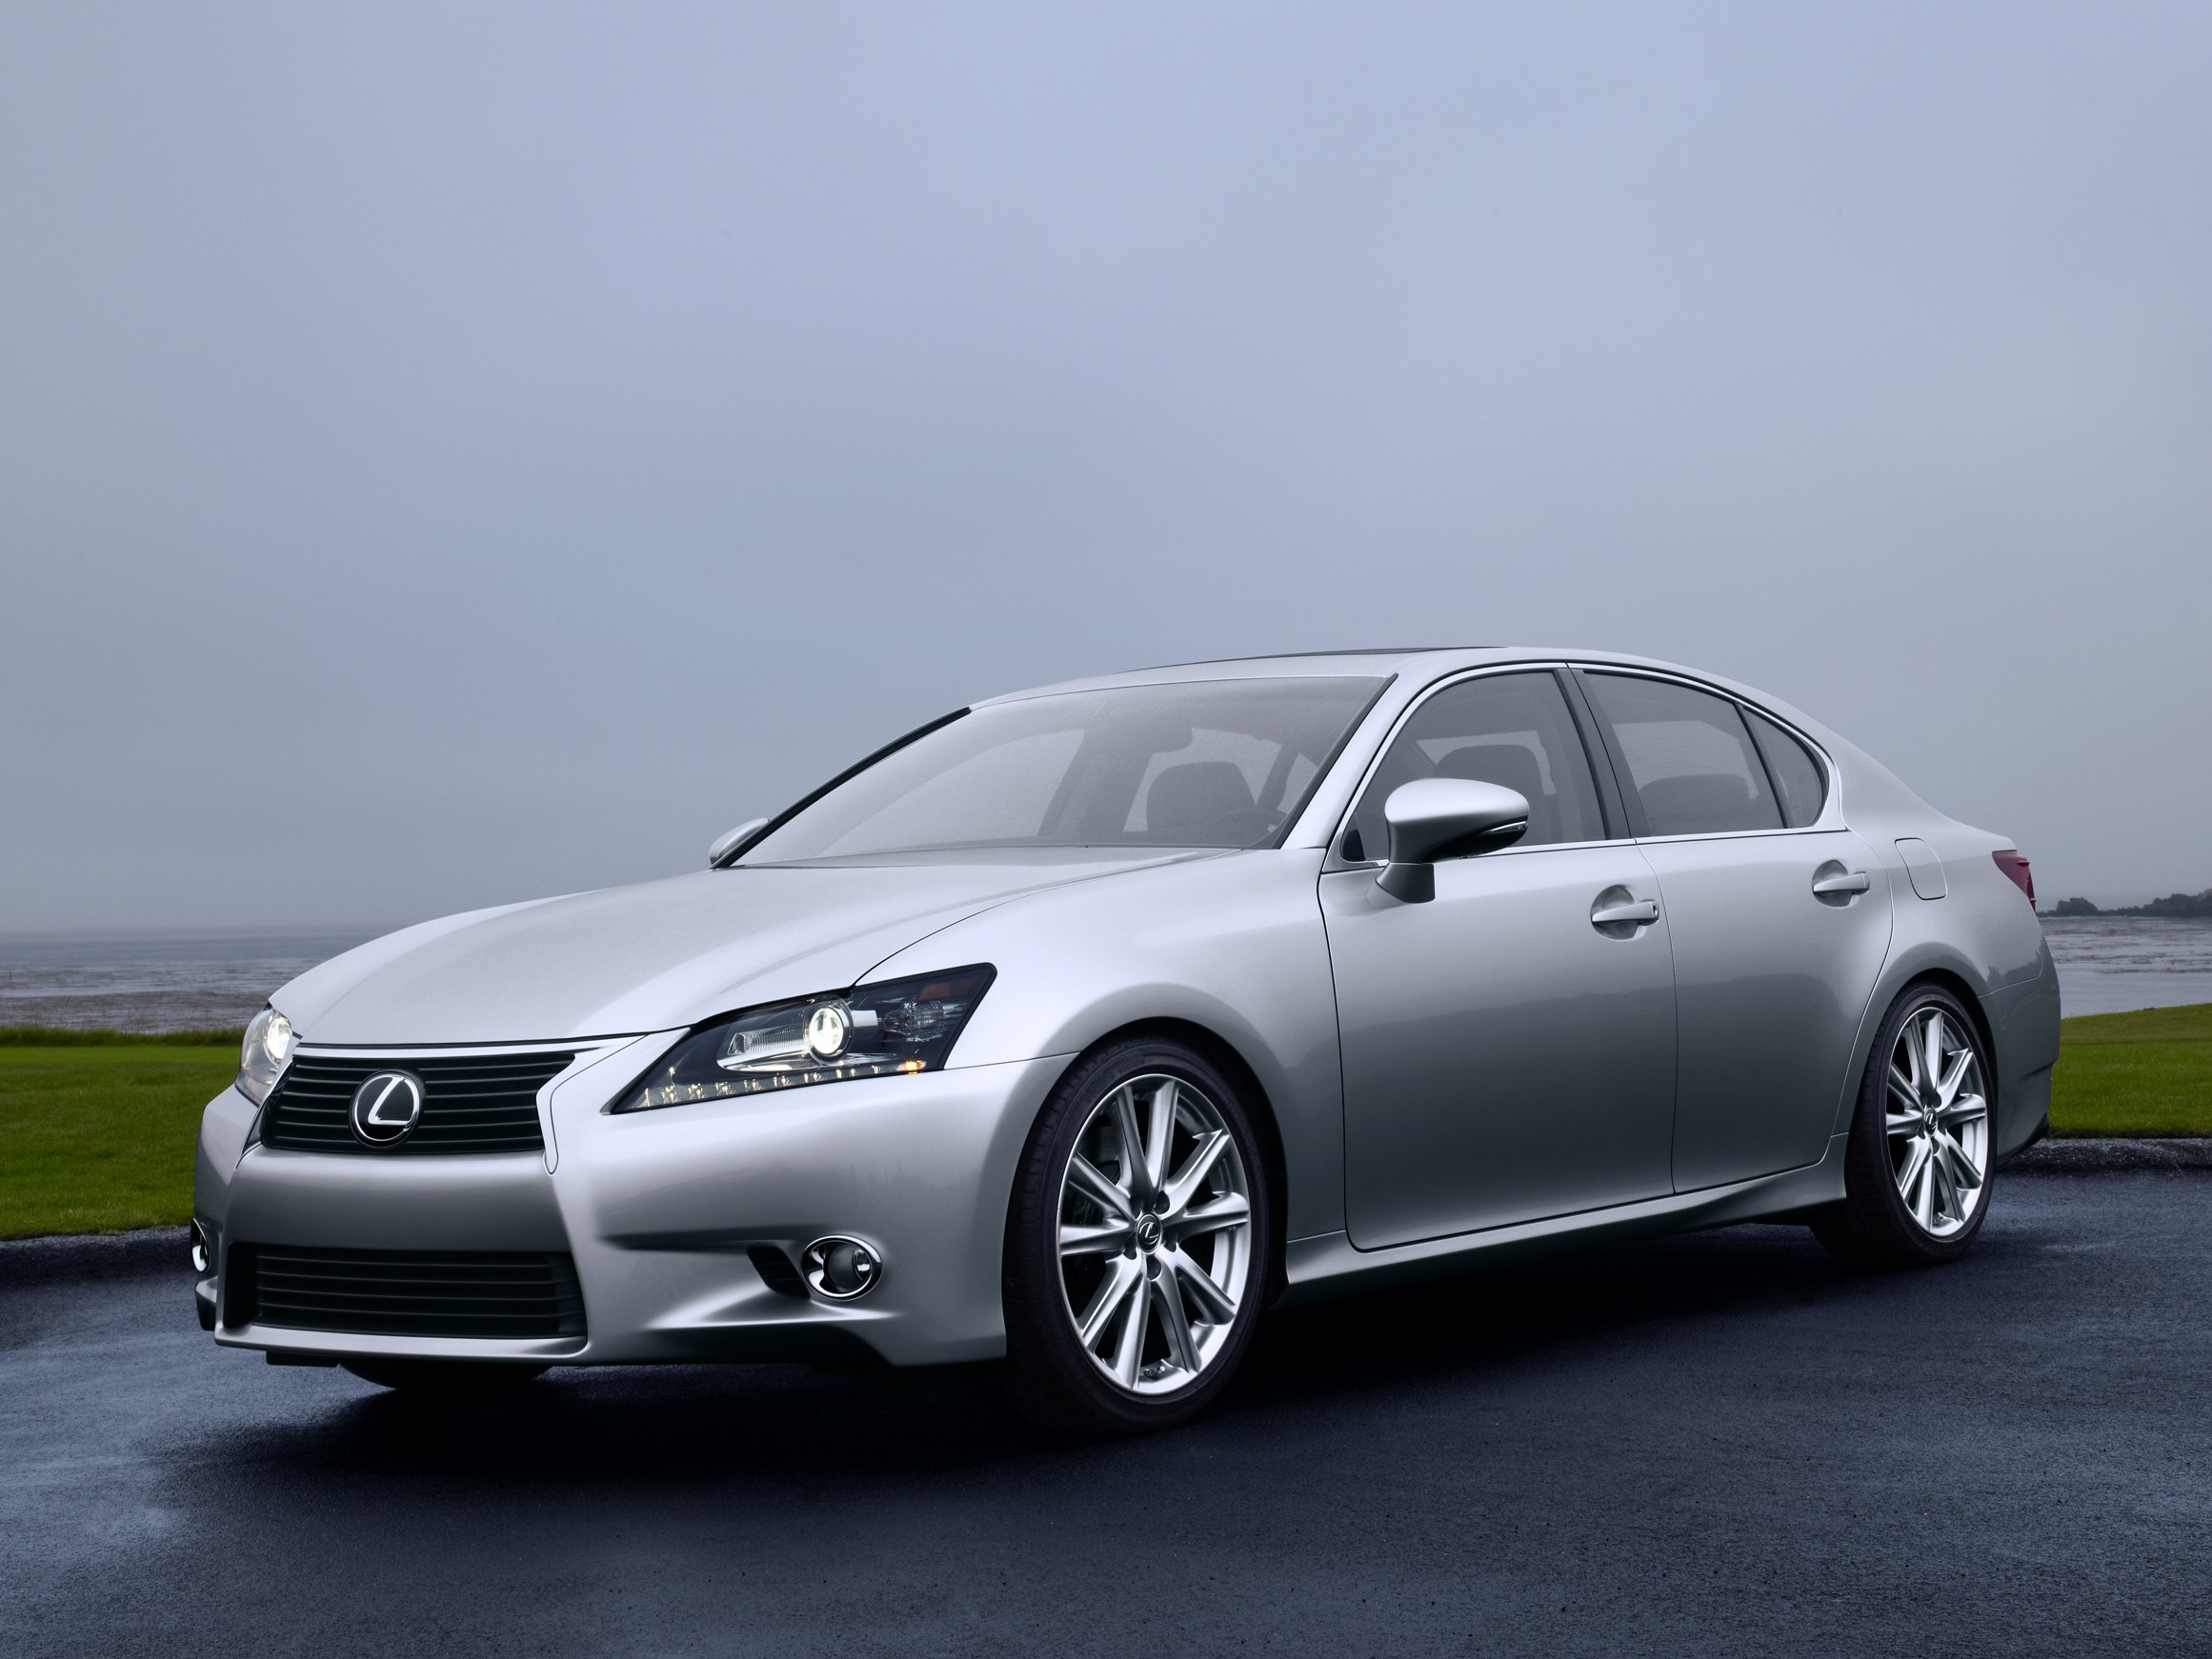 new and used lexus gs 350 prices photos reviews specs the car connection. Black Bedroom Furniture Sets. Home Design Ideas